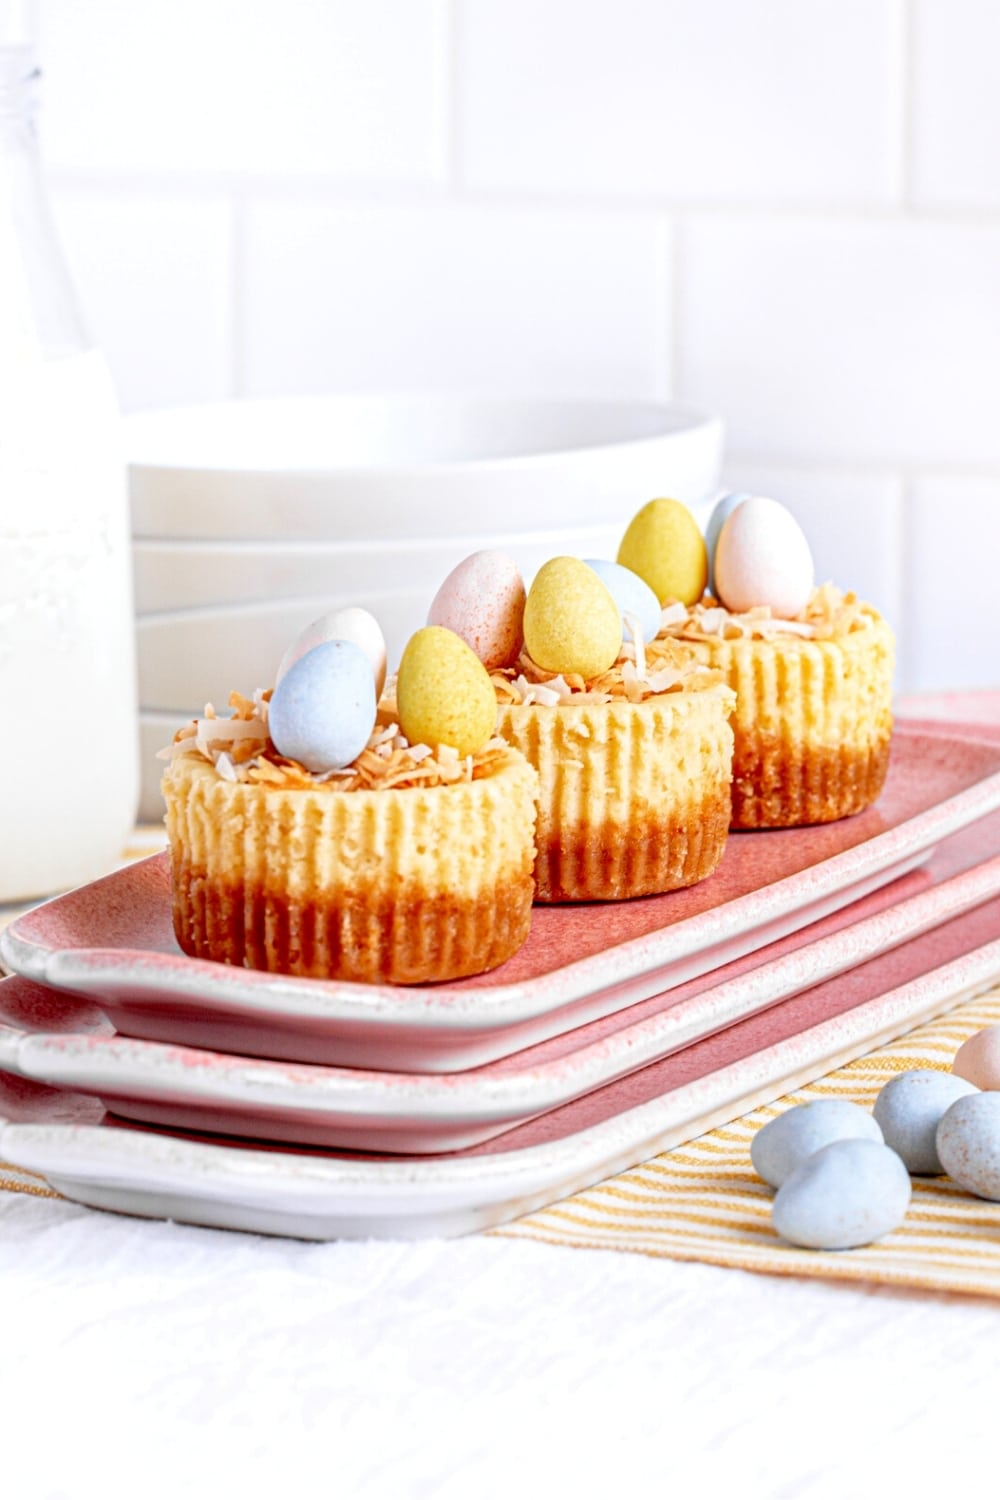 Mini Easter cheesecakes with a bird's nest of shredded coconut with candy eggs on a pink platter.